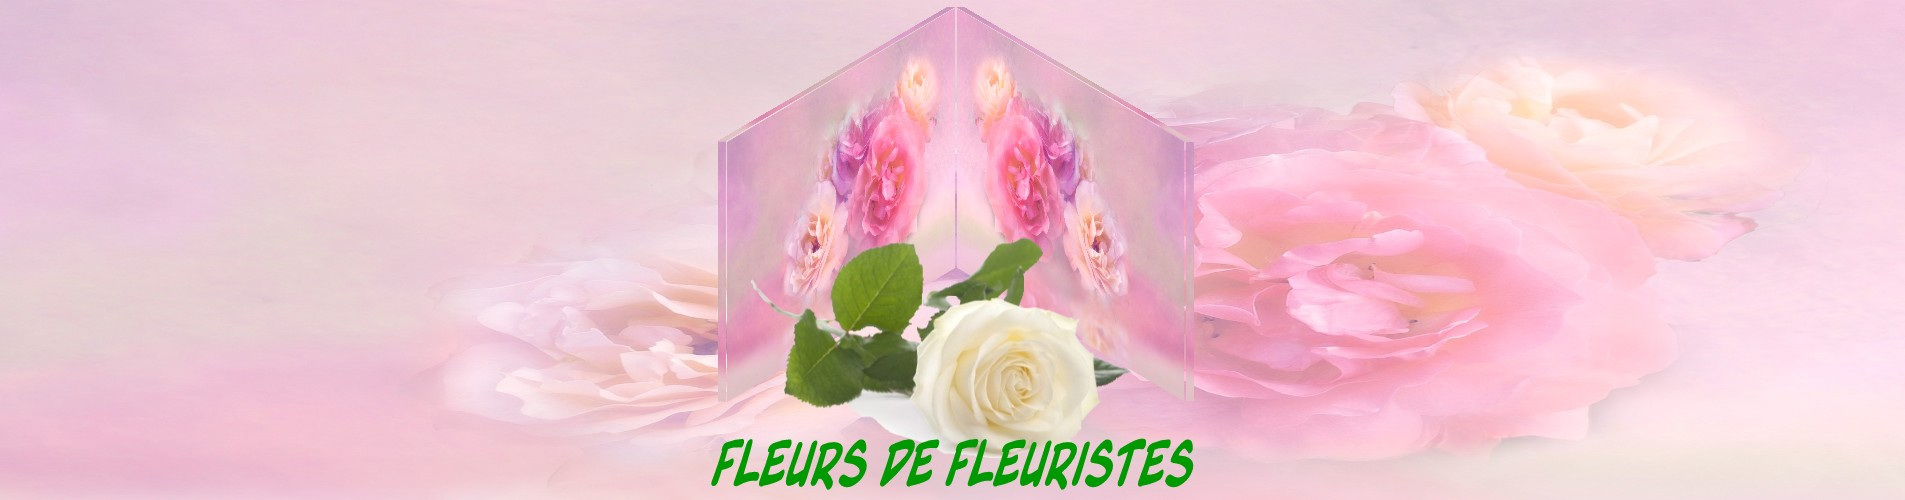 FLEURISTE SAINT-GEORGES-SUR-ALLIER